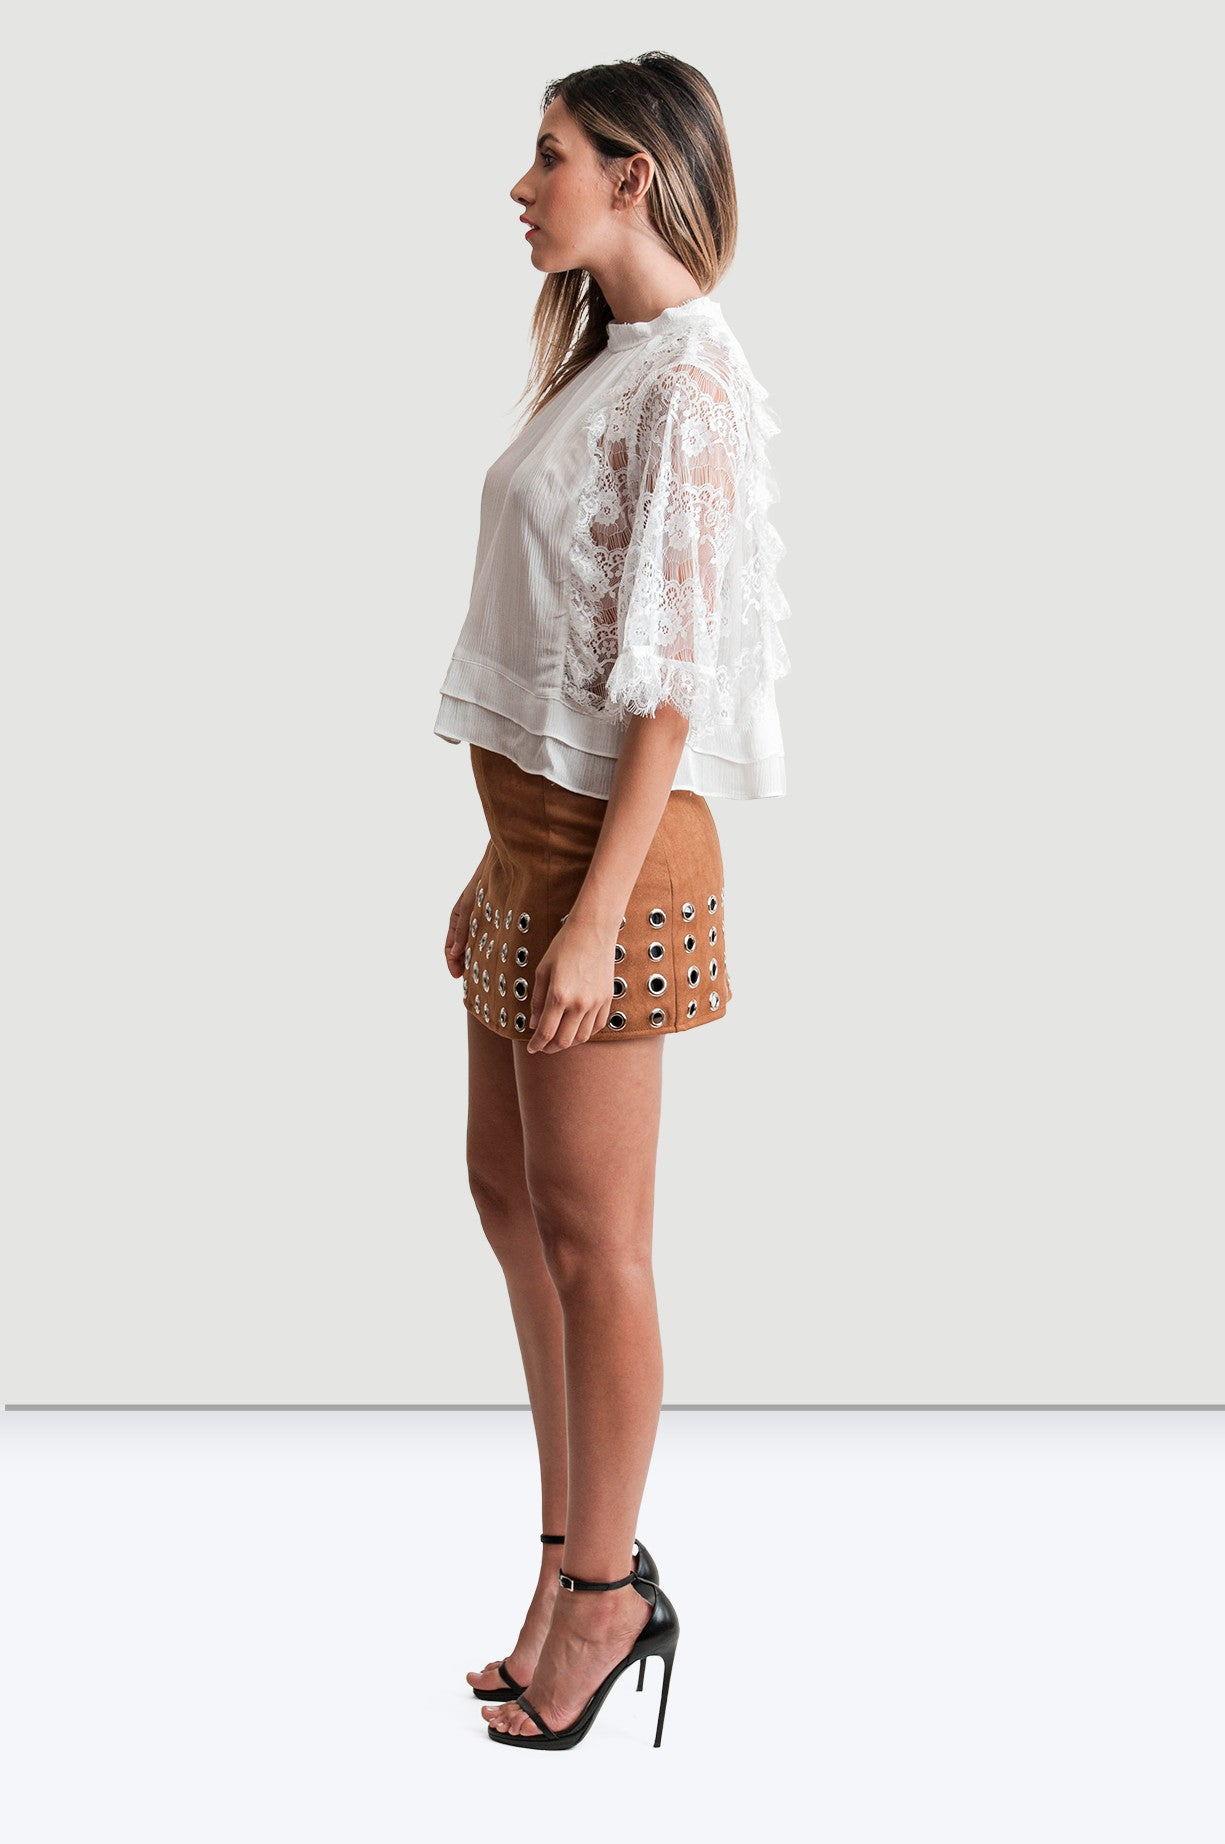 White Exposition Blouse - Jade and Camil